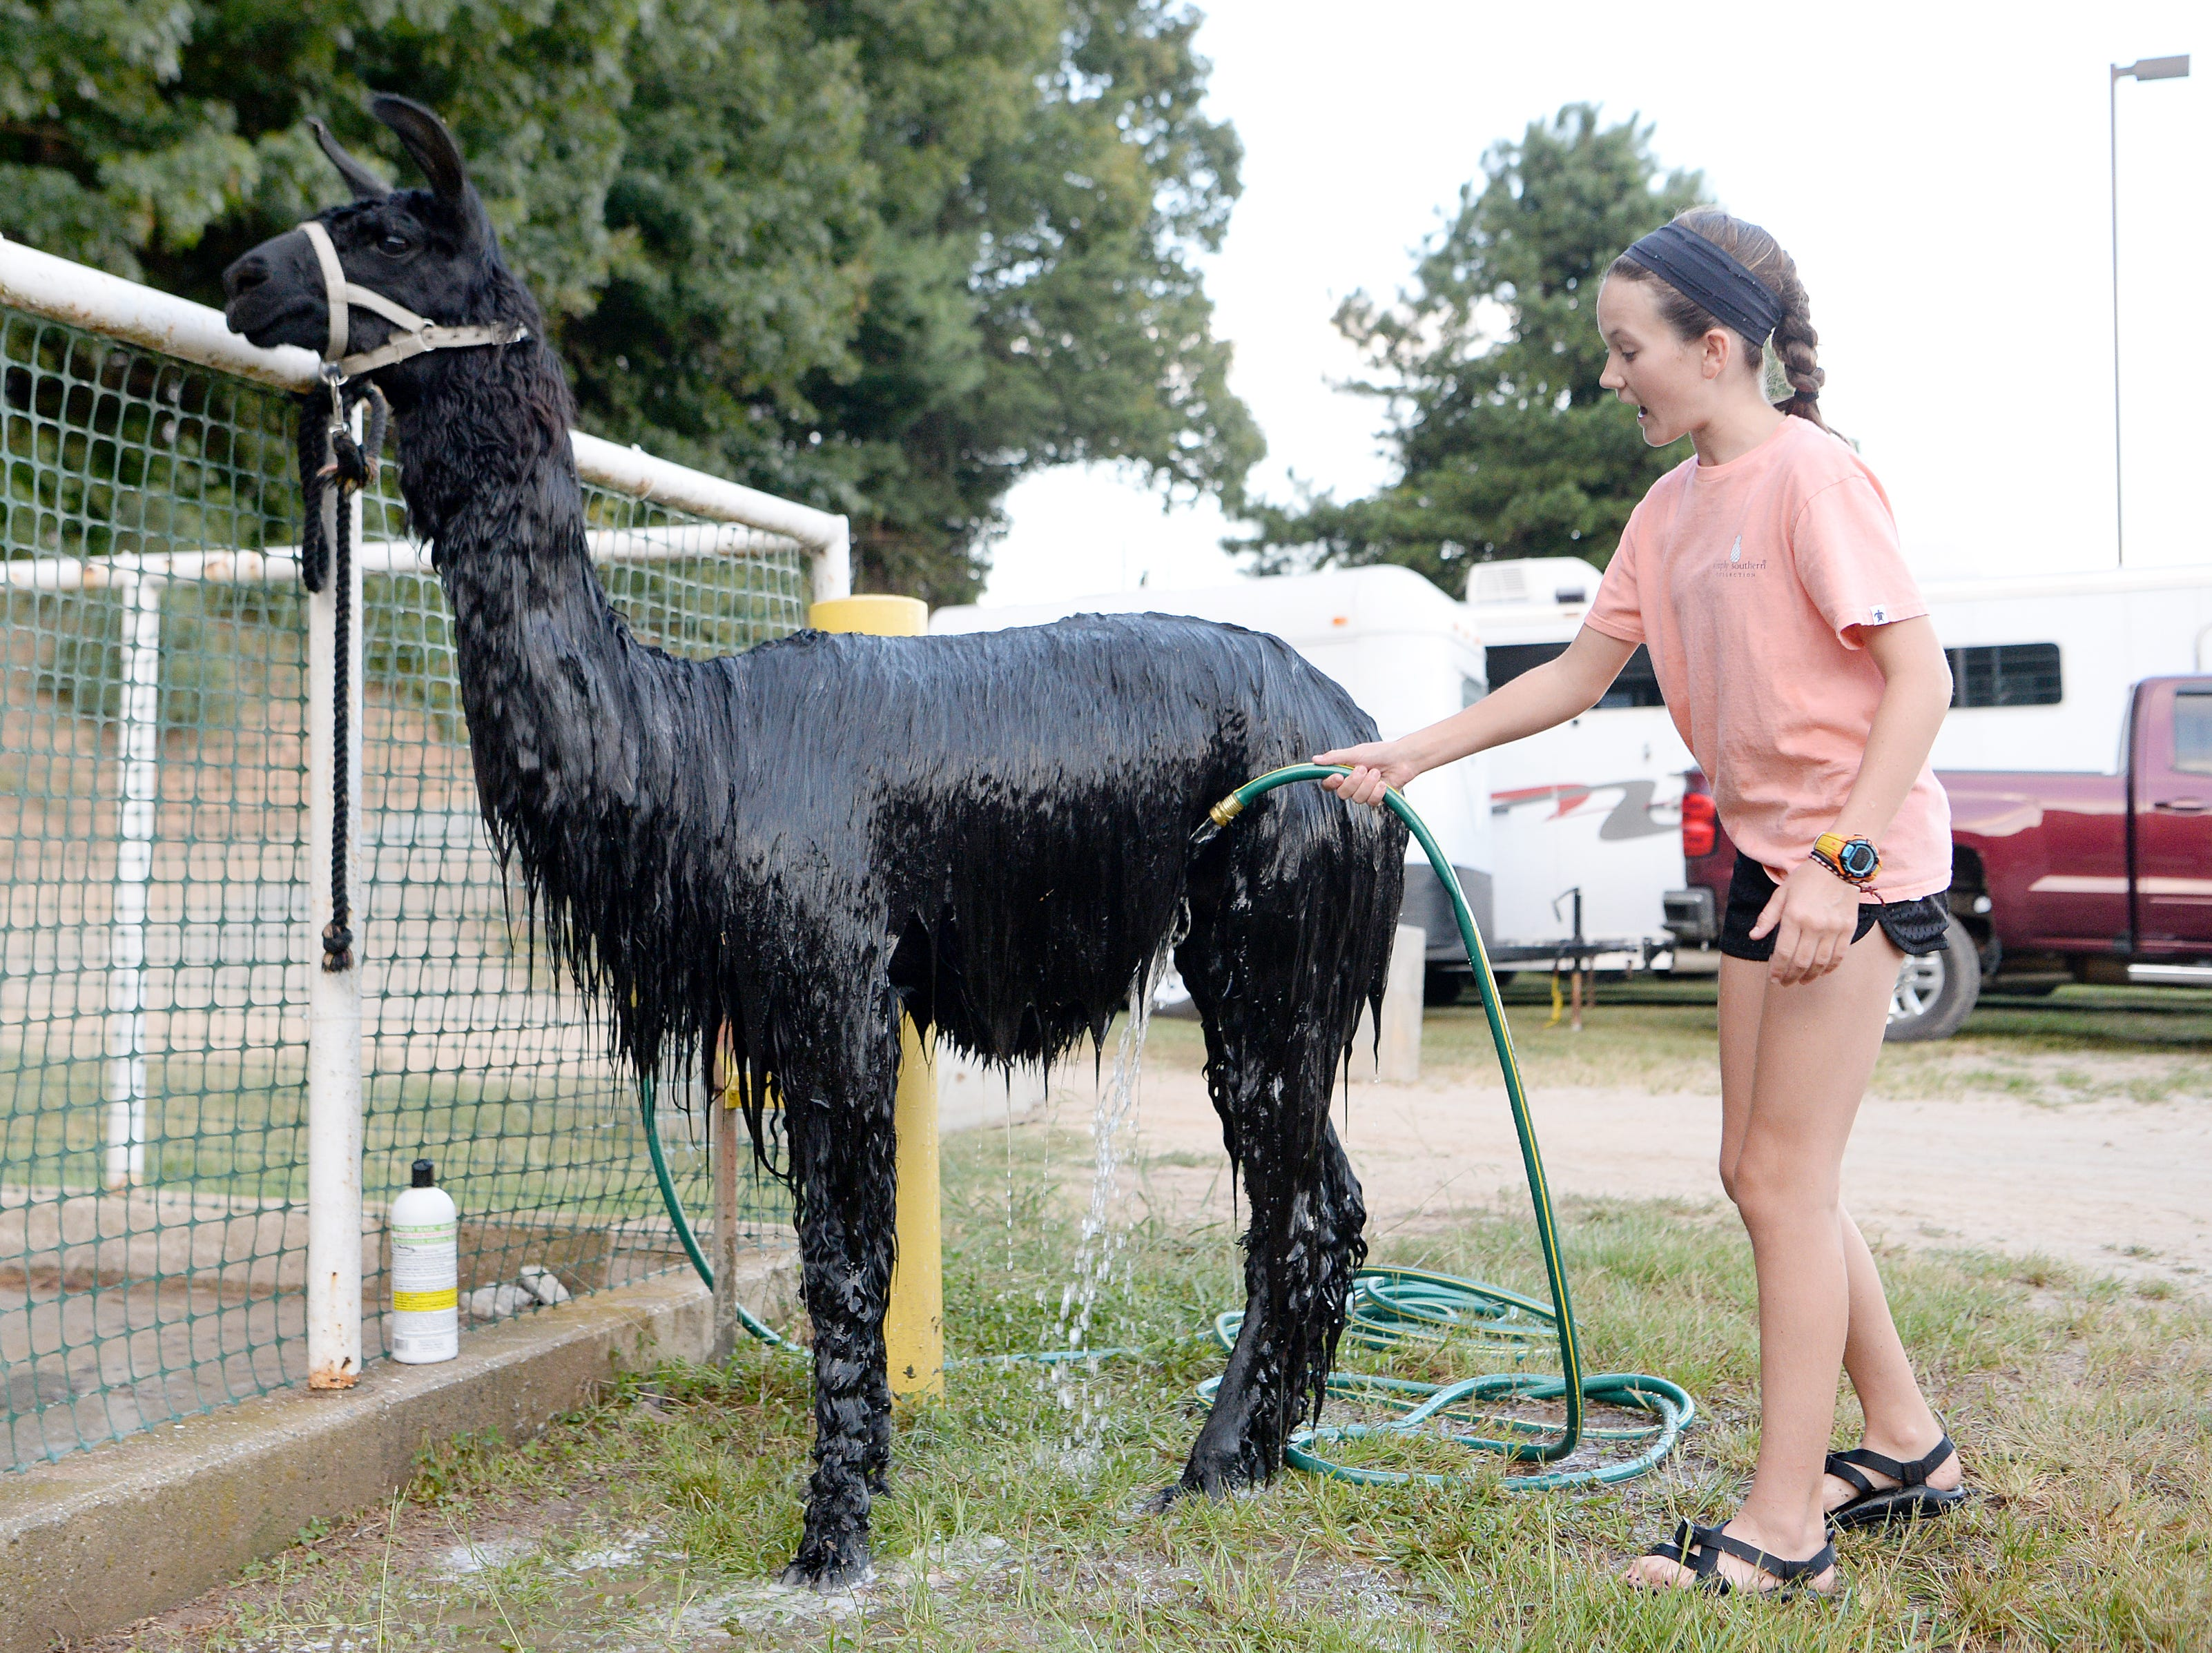 Allie Justice, 13, washes her llama, Jellybean, during the opening day of the NC Mountain State Fair at the WNC Agricultural Center on Sept. 7, 2018.